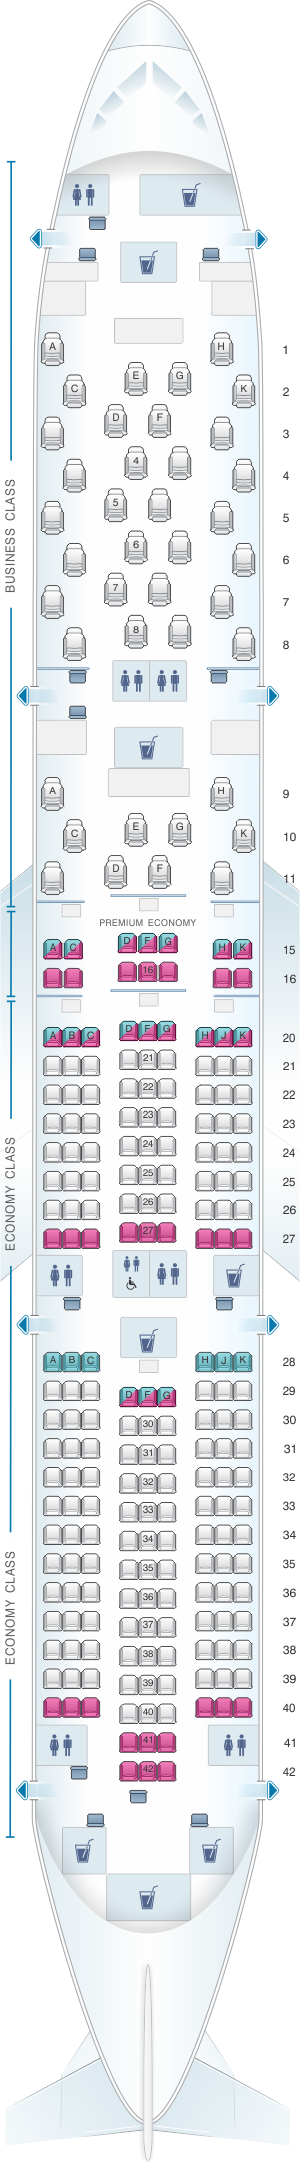 Seat map for ANA - All Nippon Airways Boeing B787-9 246pax